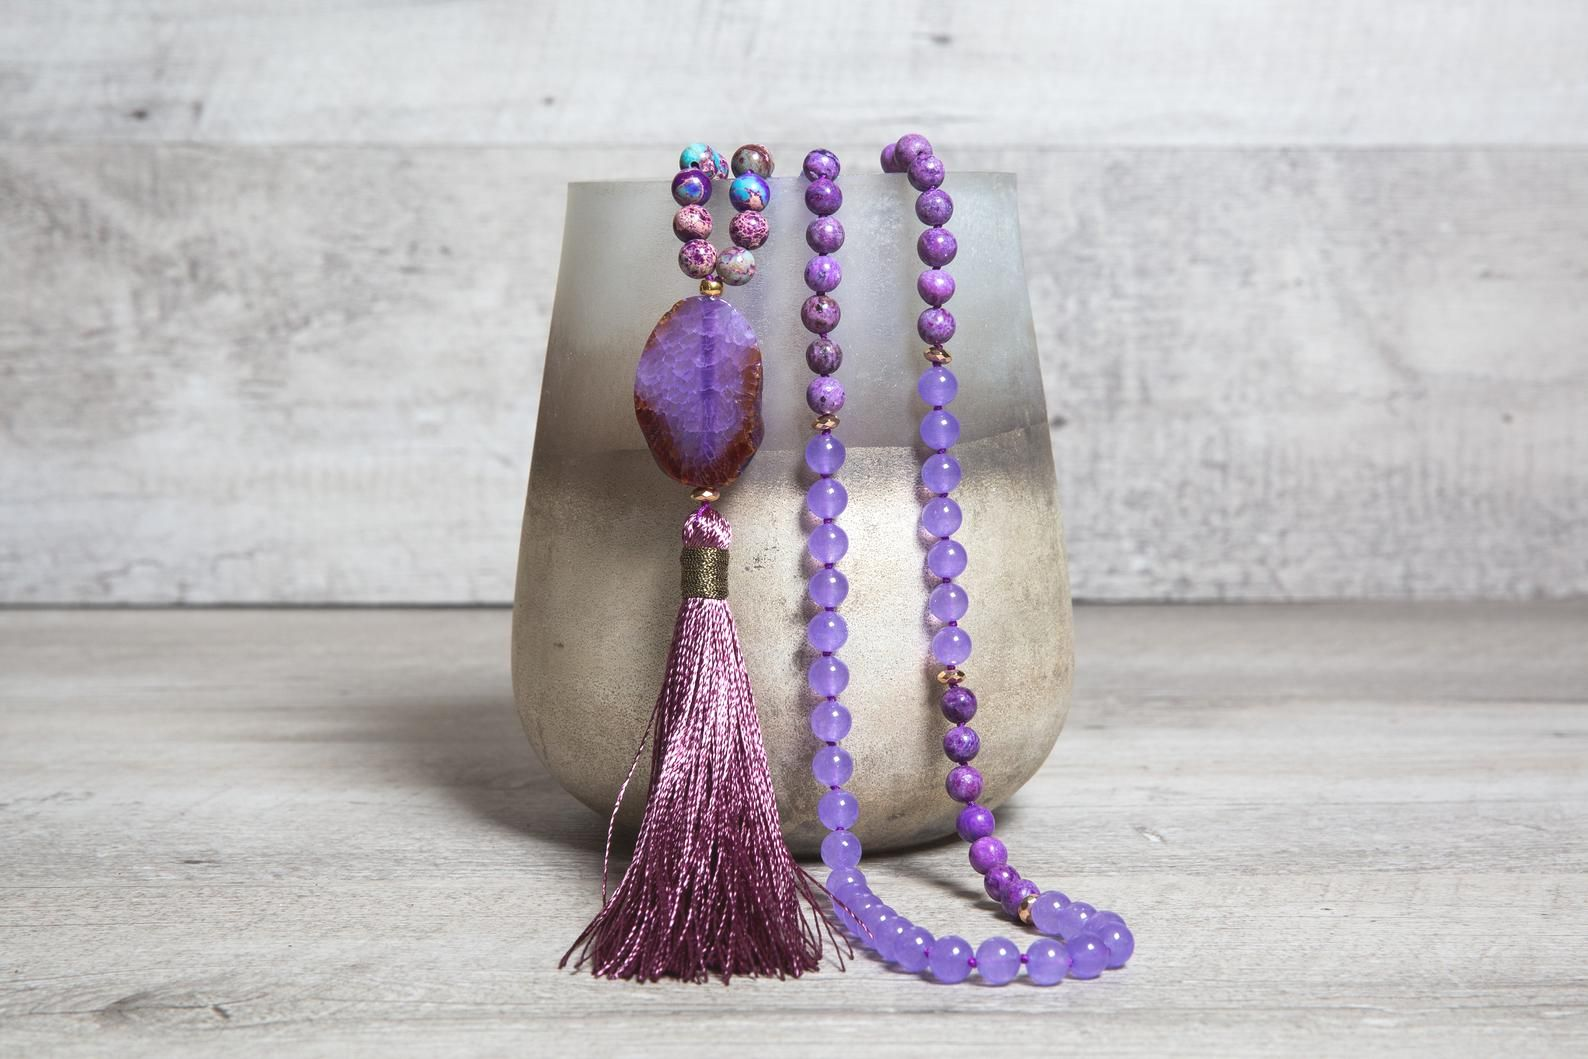 Natural Malaysia Jade Mala Necklace, Crazy Purple Agate n' Blue Violet Regalite with Raw Agate Guru Bead, One of a Kind